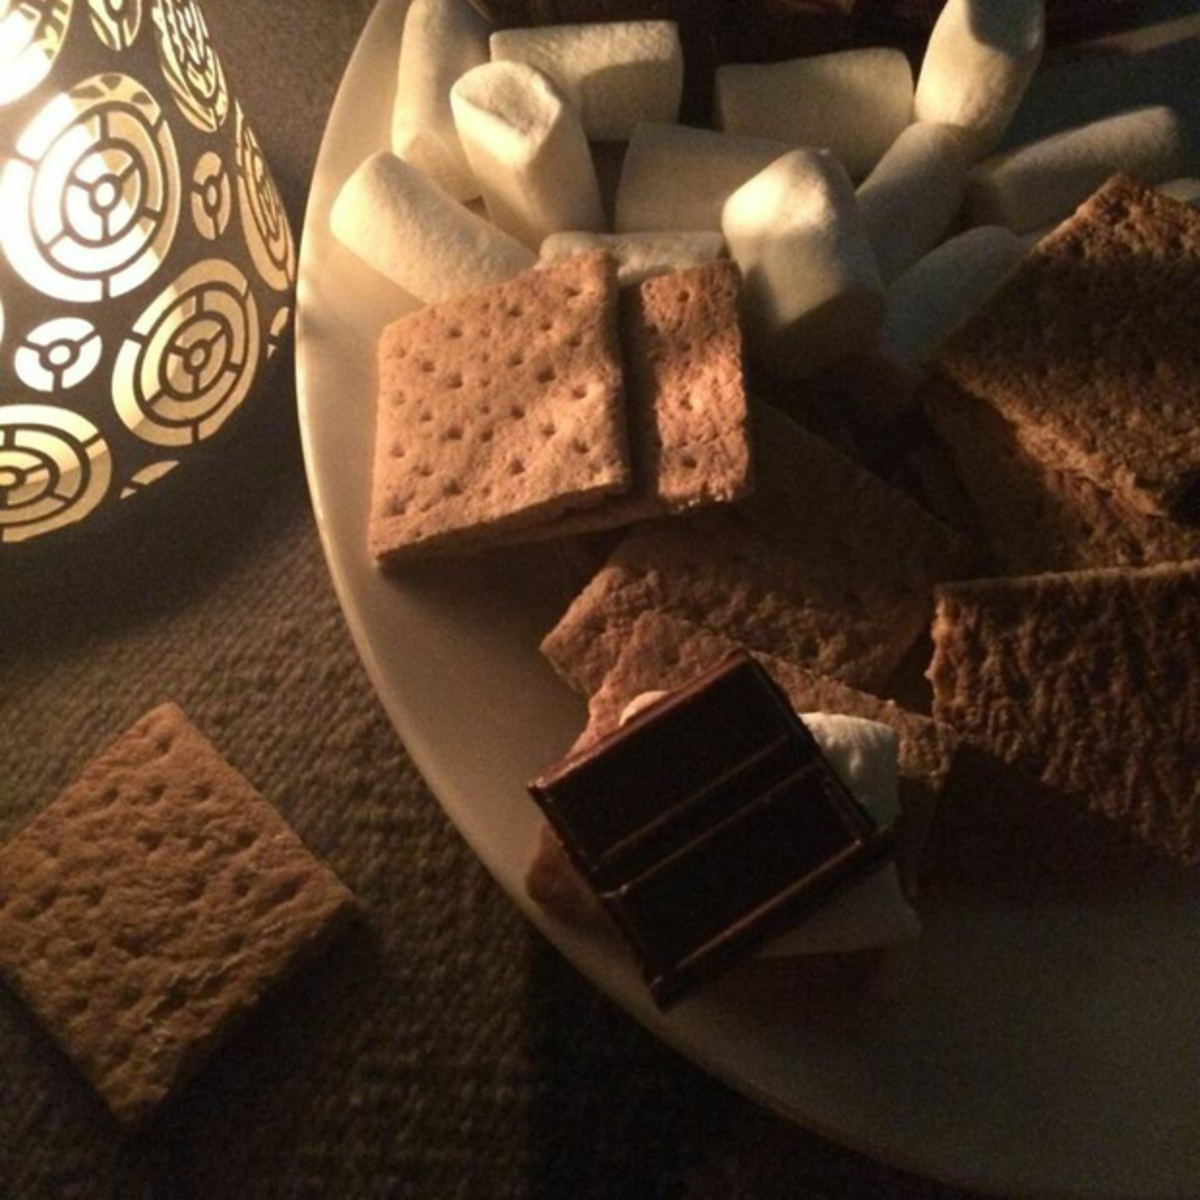 {Backyard s'mores at a friend's house}